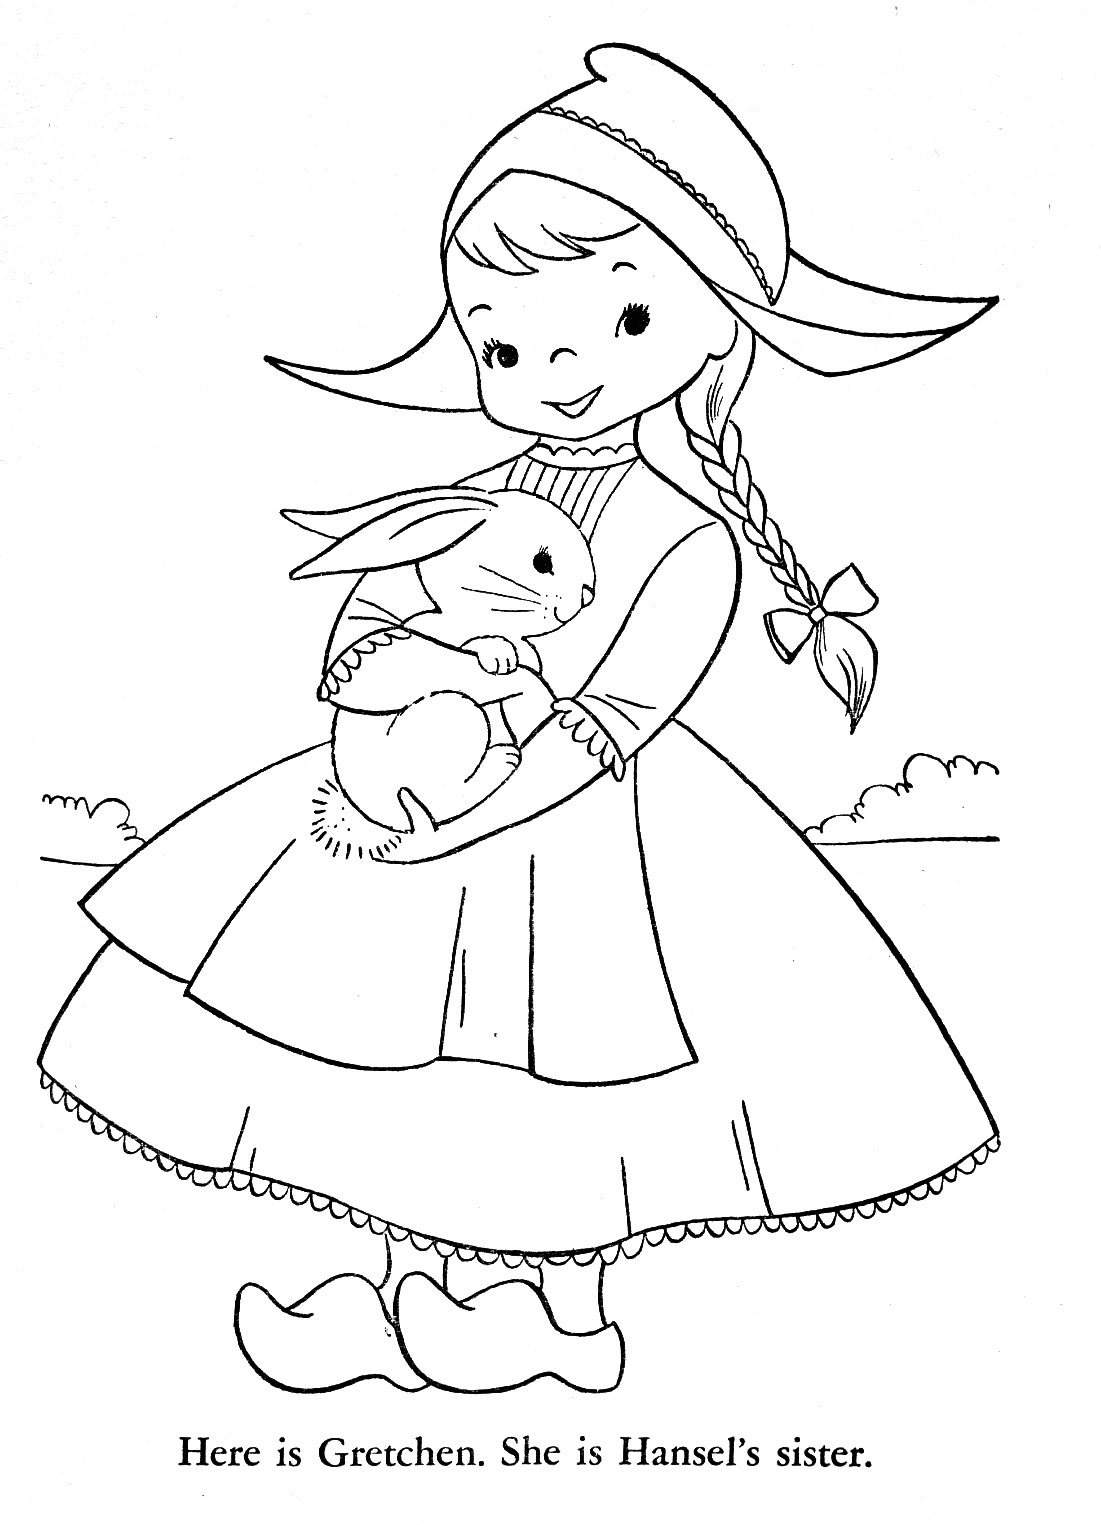 Dutch Clogs Coloring Pages Coloring